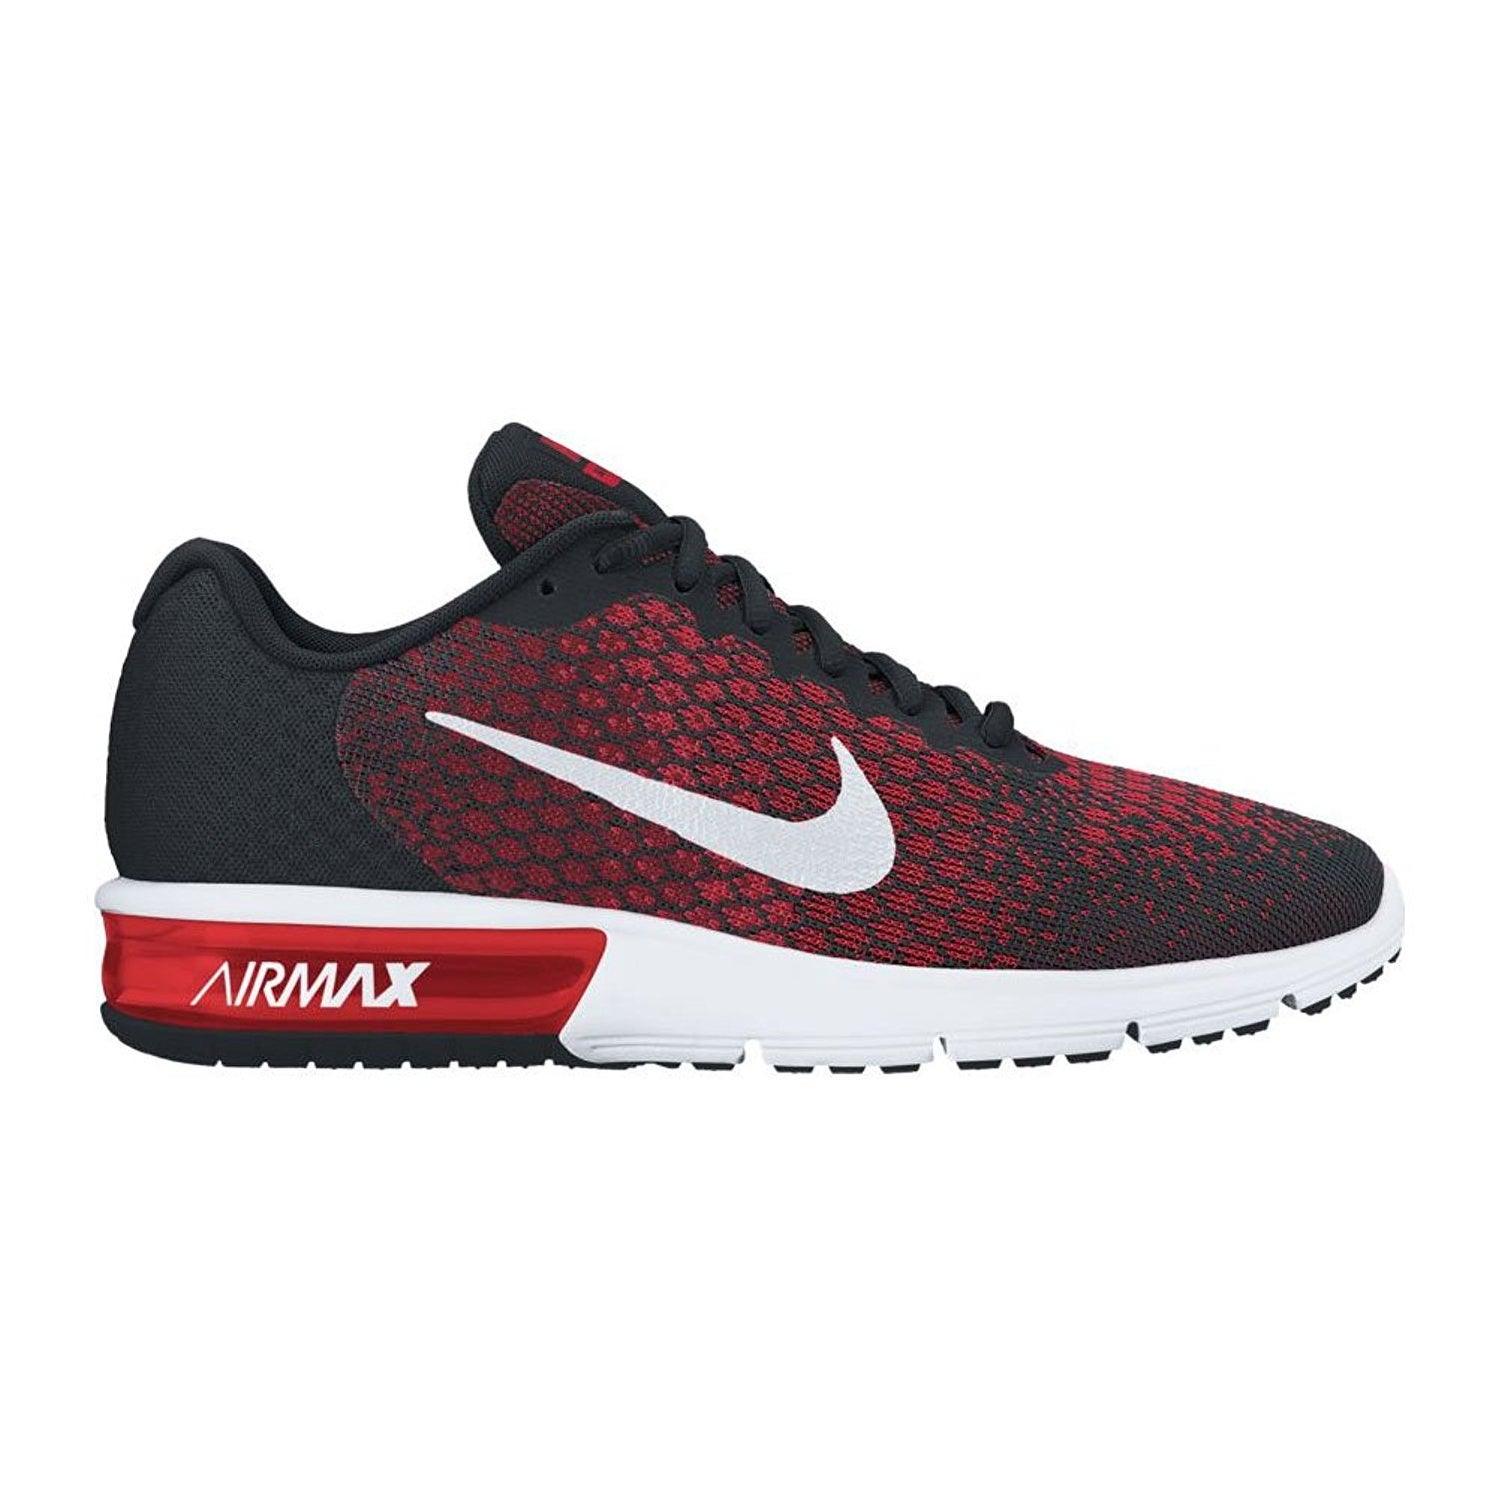 a8aeb4711f Shop Nike Air Max Sequent 2 Black/White/Team Red/University Red Men's  Running Shoes - Free Shipping Today - Overstock - 17950021